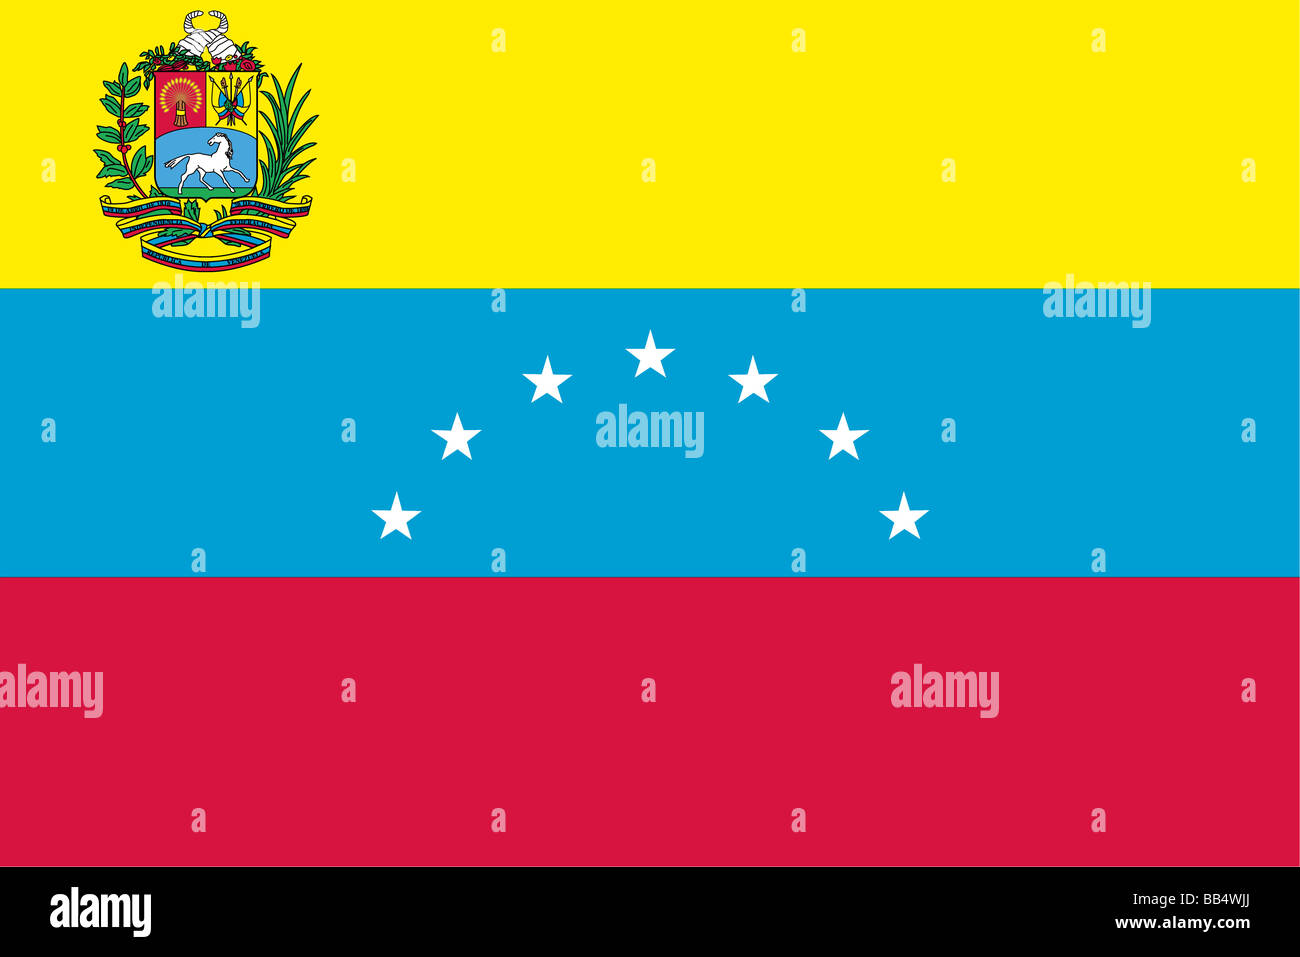 Venezuela's flag from 1864 until 2006, when an eighth star was added to represent the historical province of - Stock Image